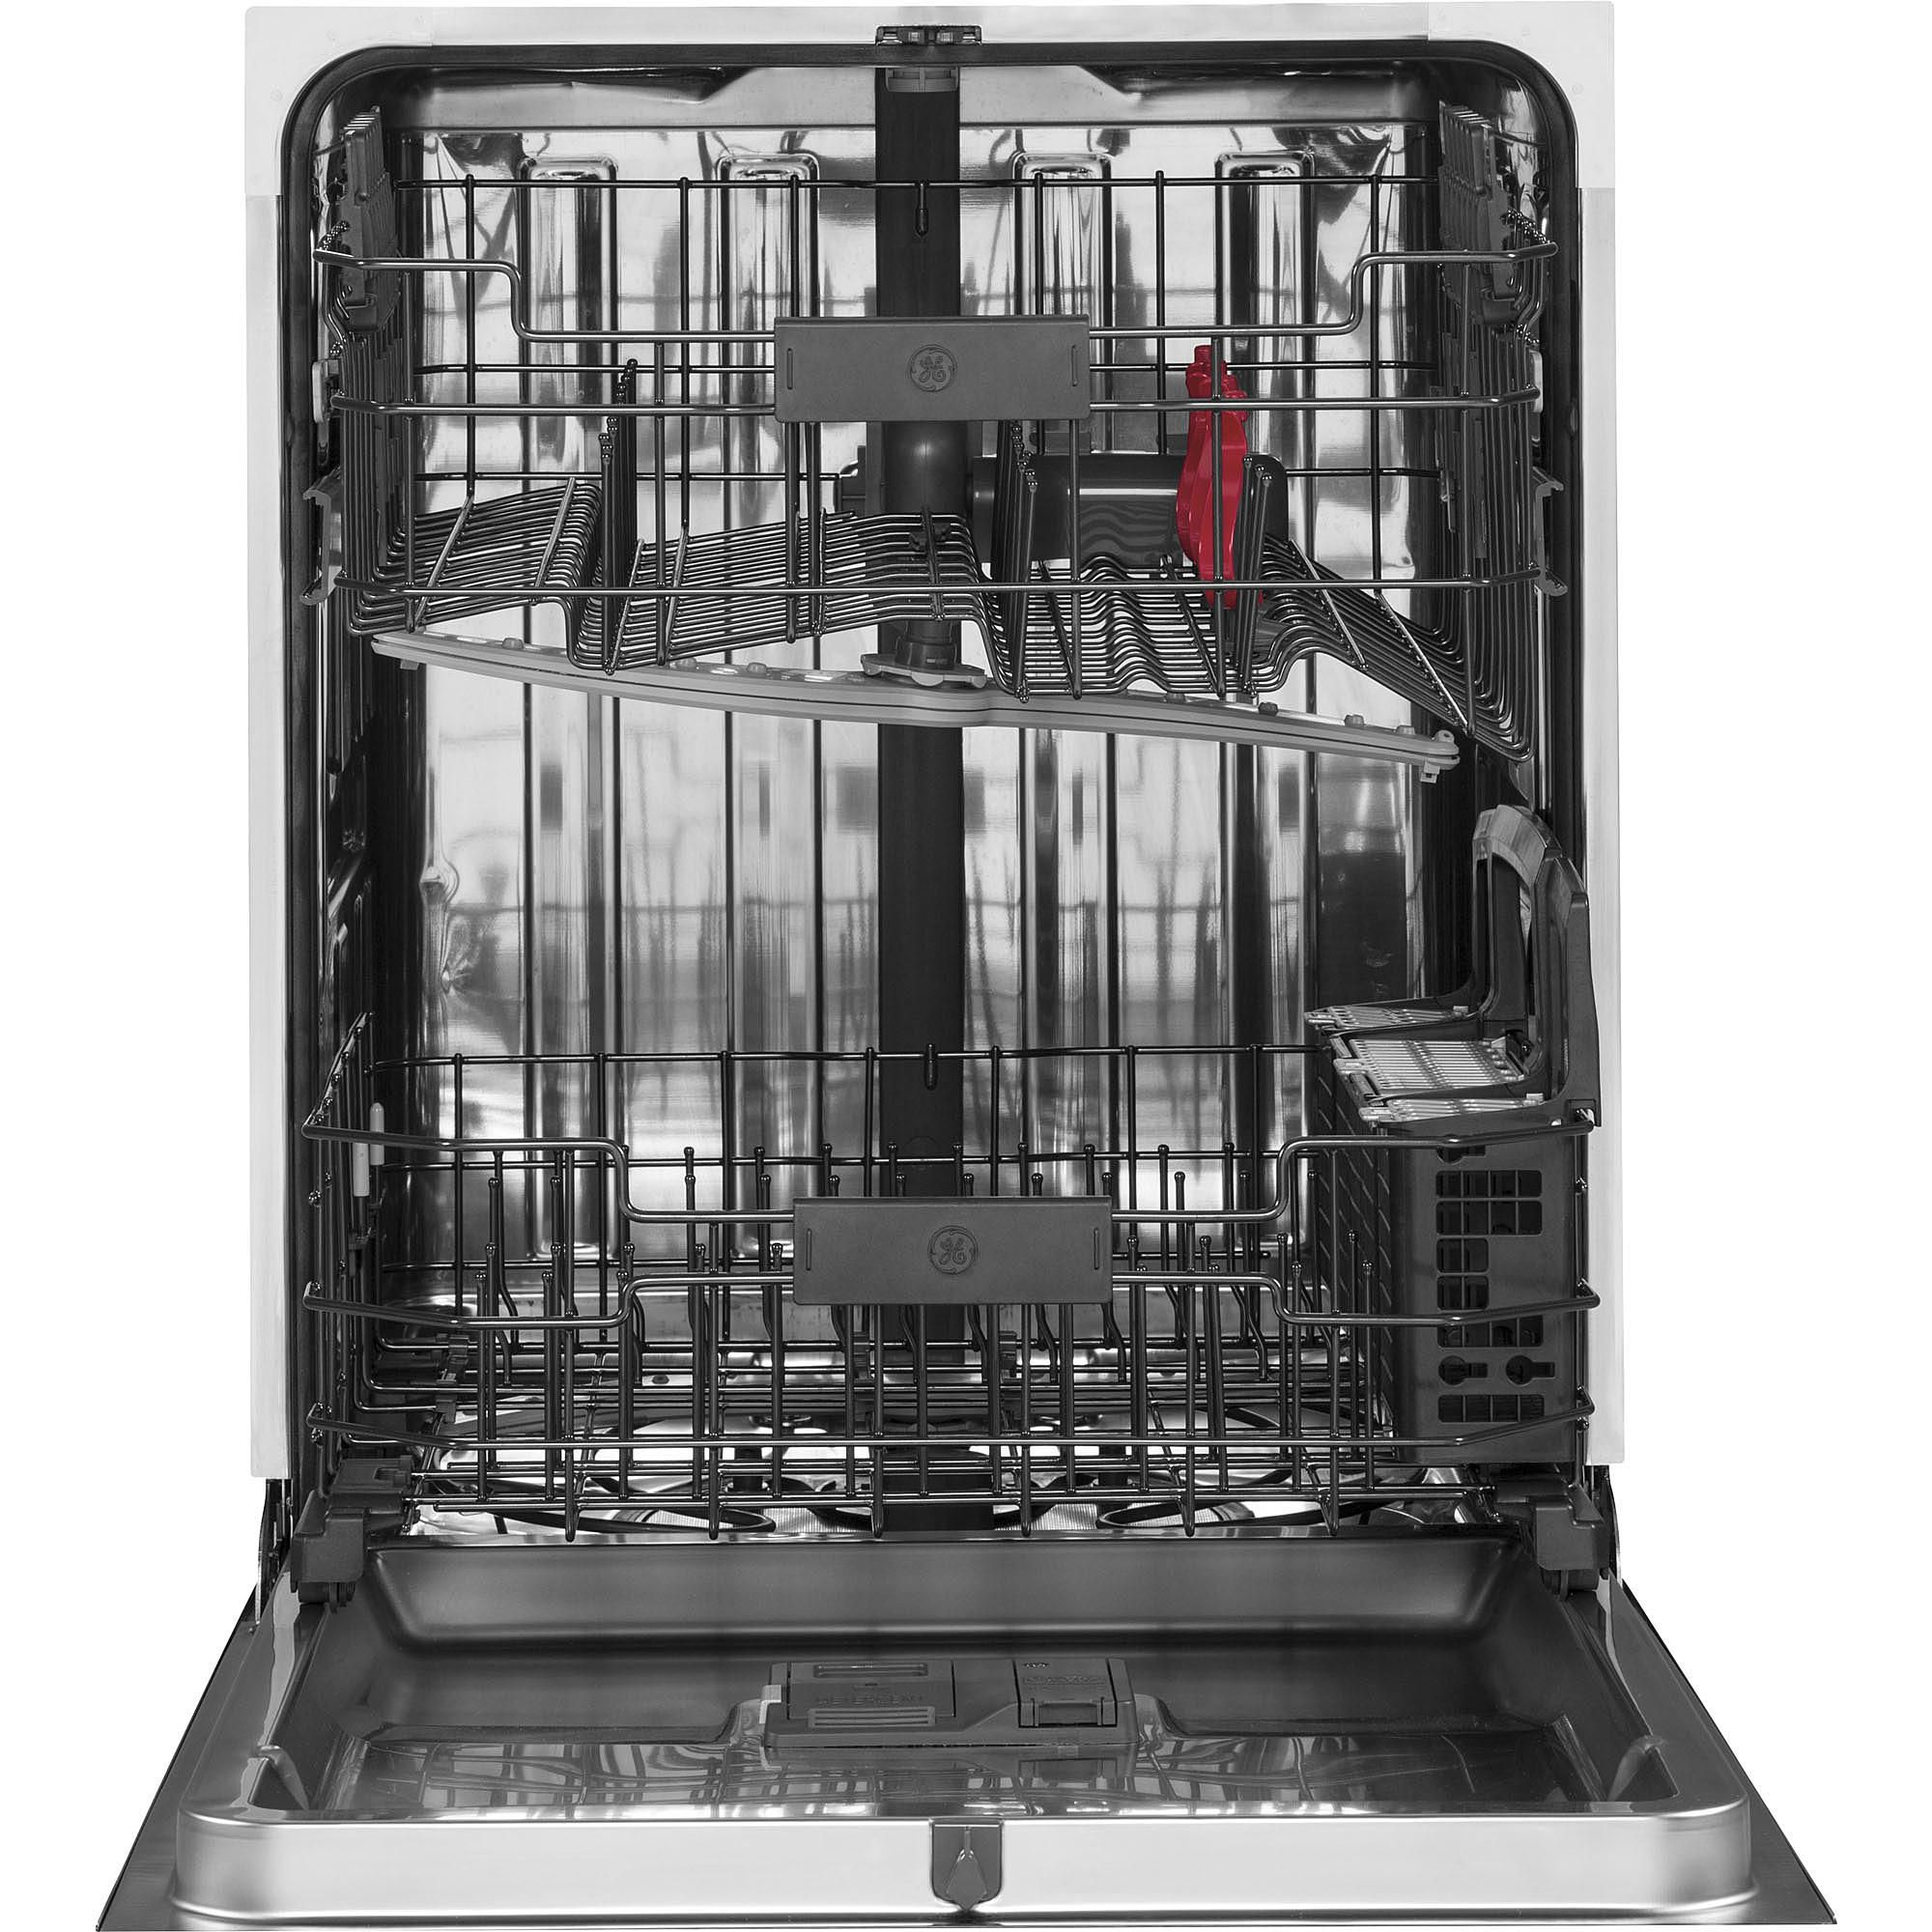 Ge Appliances Gdt655smjes 24 In Built In Dishwasher W Piranha